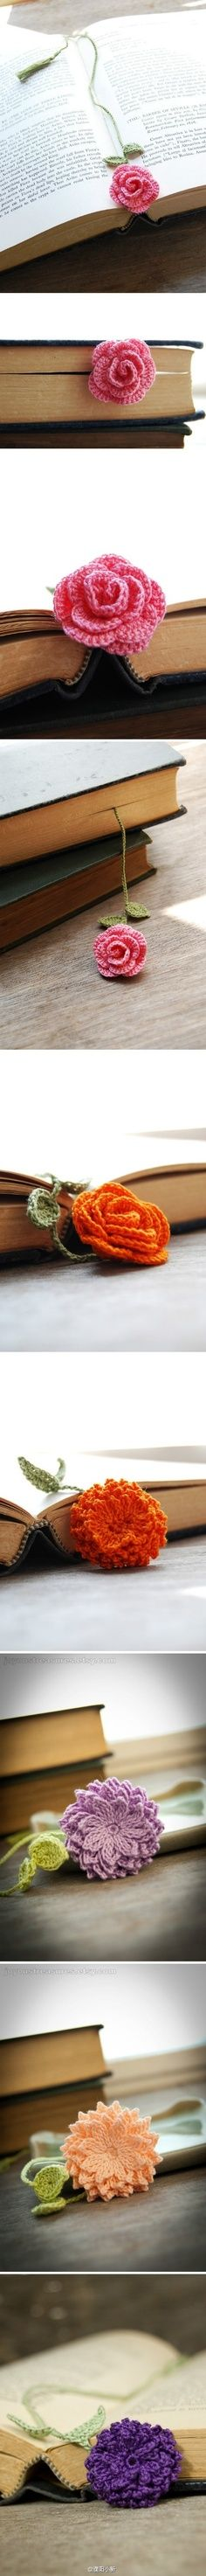 Pretty bookmarks - crochet flowers (but no pattern that I can see). Too bad there is no pattern. I don't crochet, but I sure would love for my crochet friends to make me one! Marque-pages Au Crochet, Crochet Amigurumi, Love Crochet, Crochet Crafts, Yarn Crafts, Beautiful Crochet, Yarn Projects, Knitting Projects, Crochet Projects